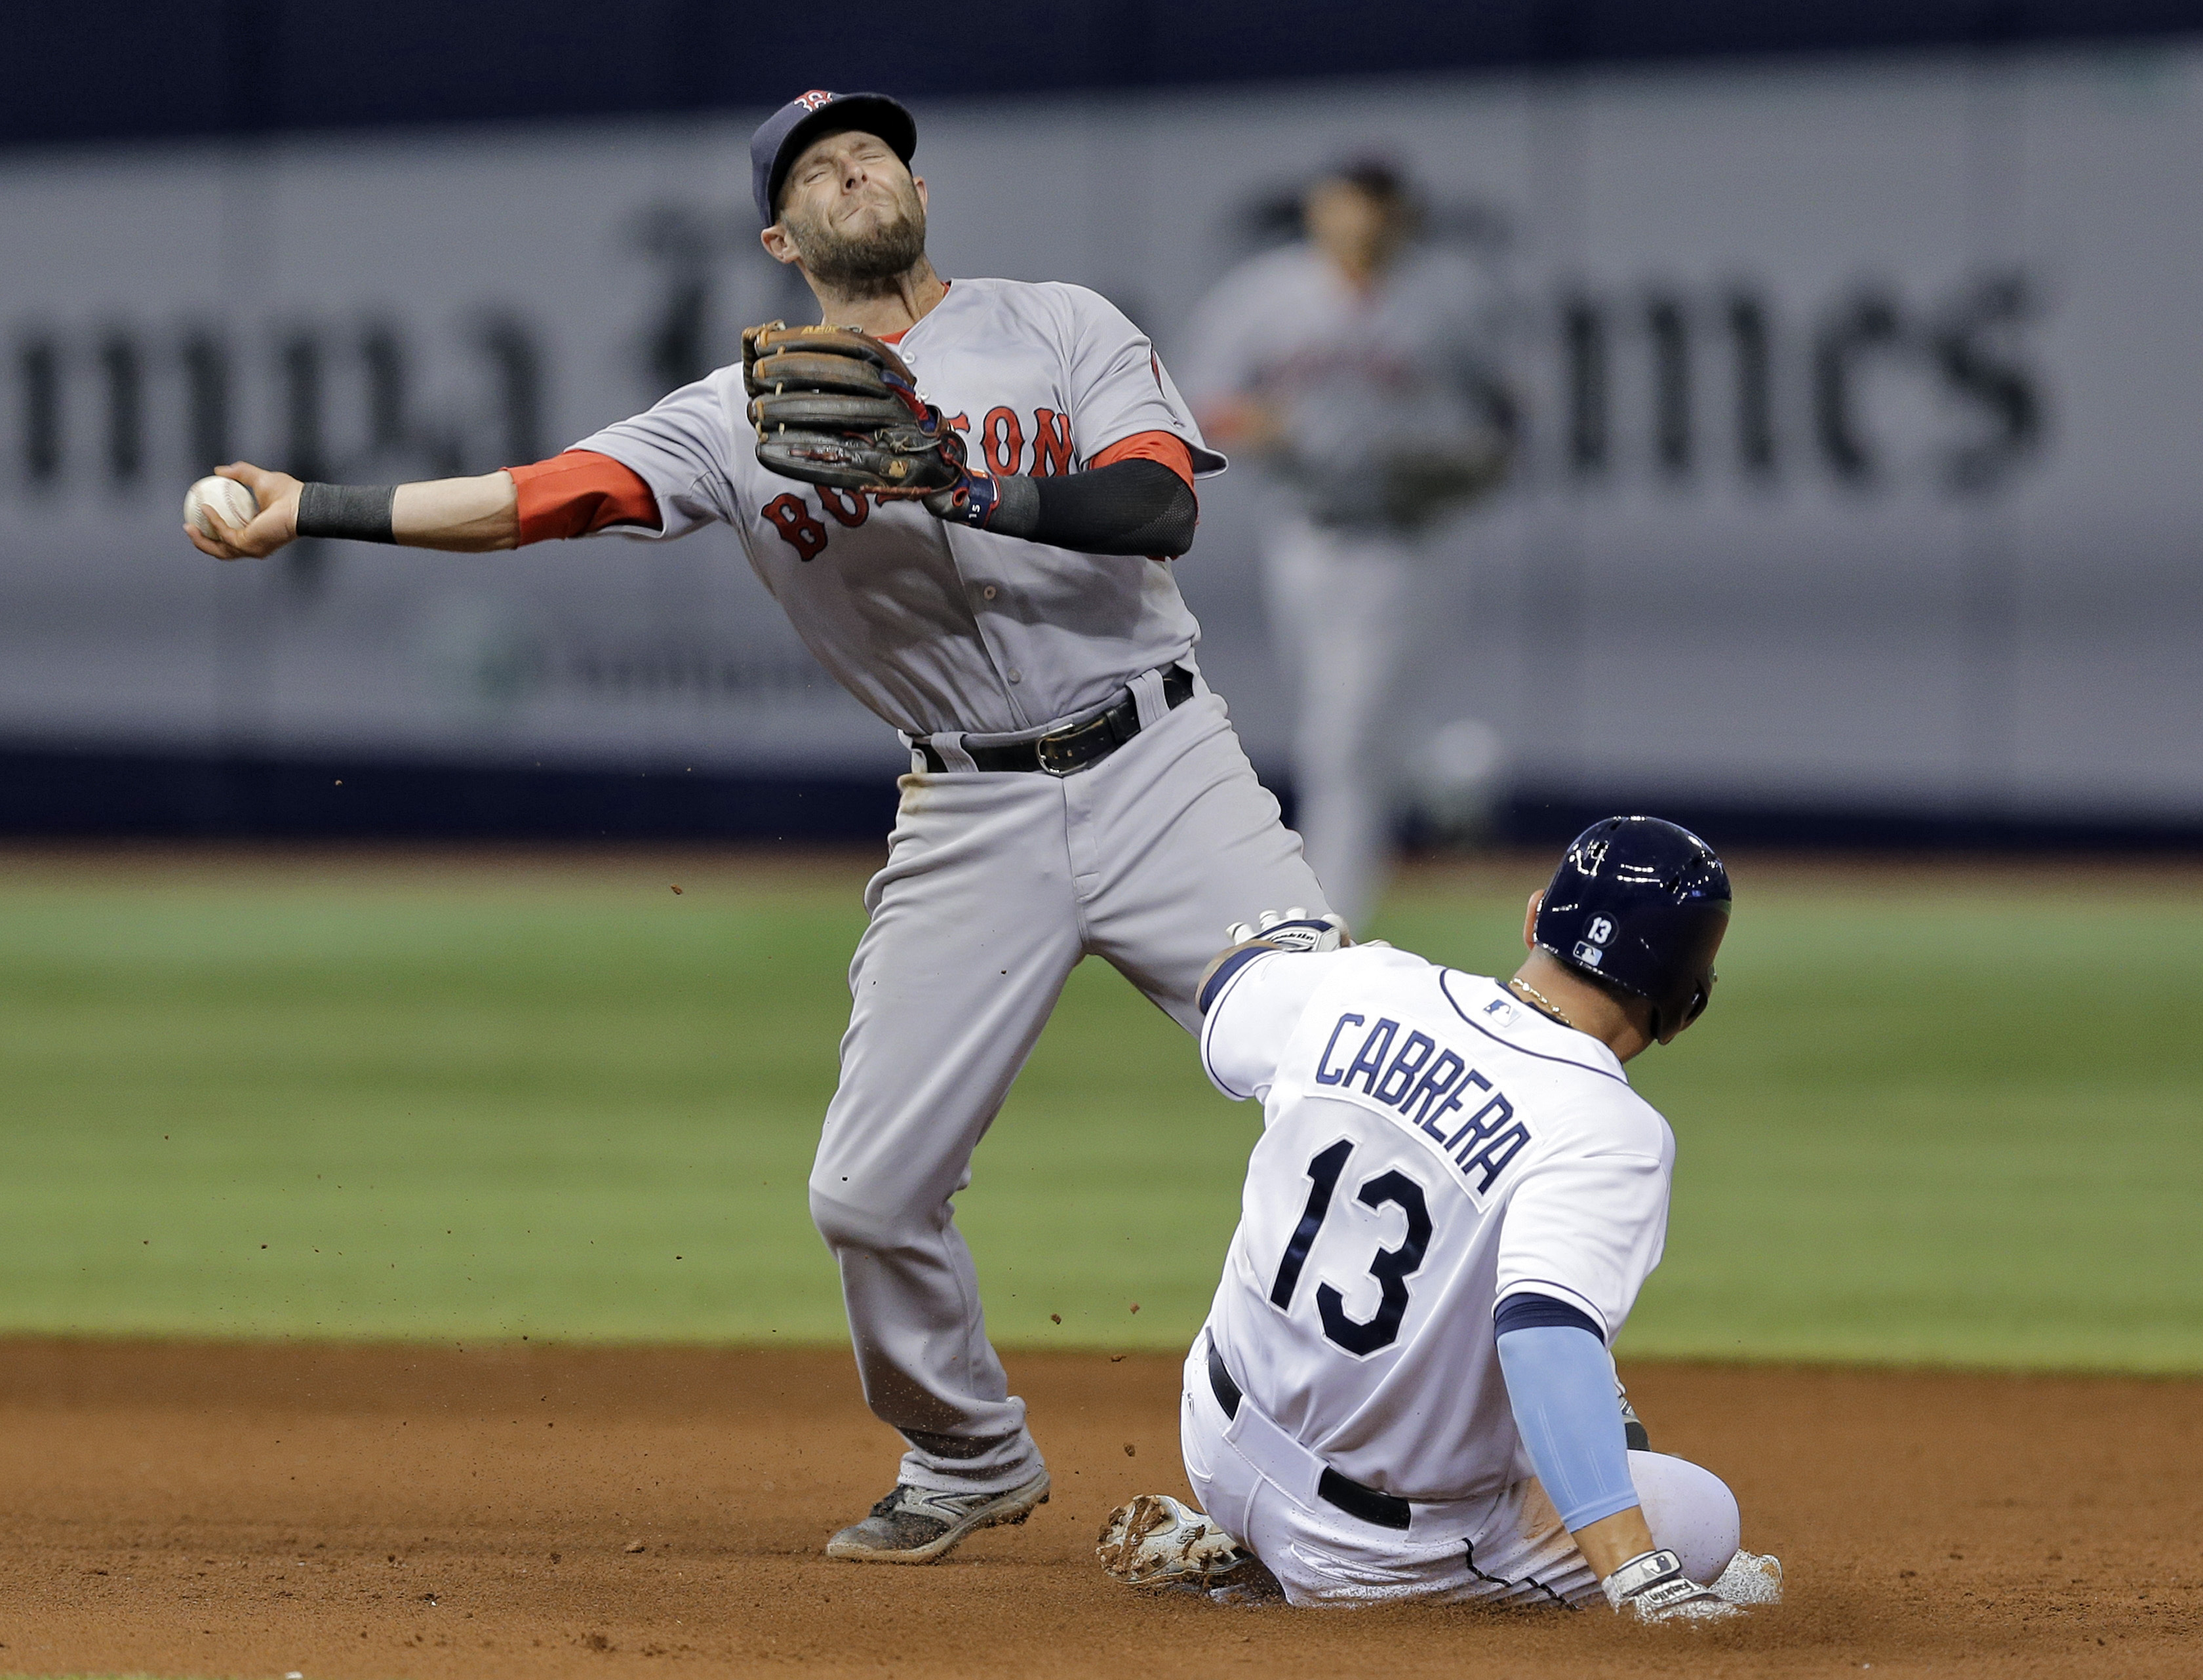 Boston Red Sox second baseman Dustin Pedroia forces Tampa Bay Rays' Asdrubal Cabrera (13) at second base on a ball hit by Desmond Jennings, who was safe at first during the sixth inning of a baseball game Thursday, April 23, 2015, in St. Petersburg, Fla.